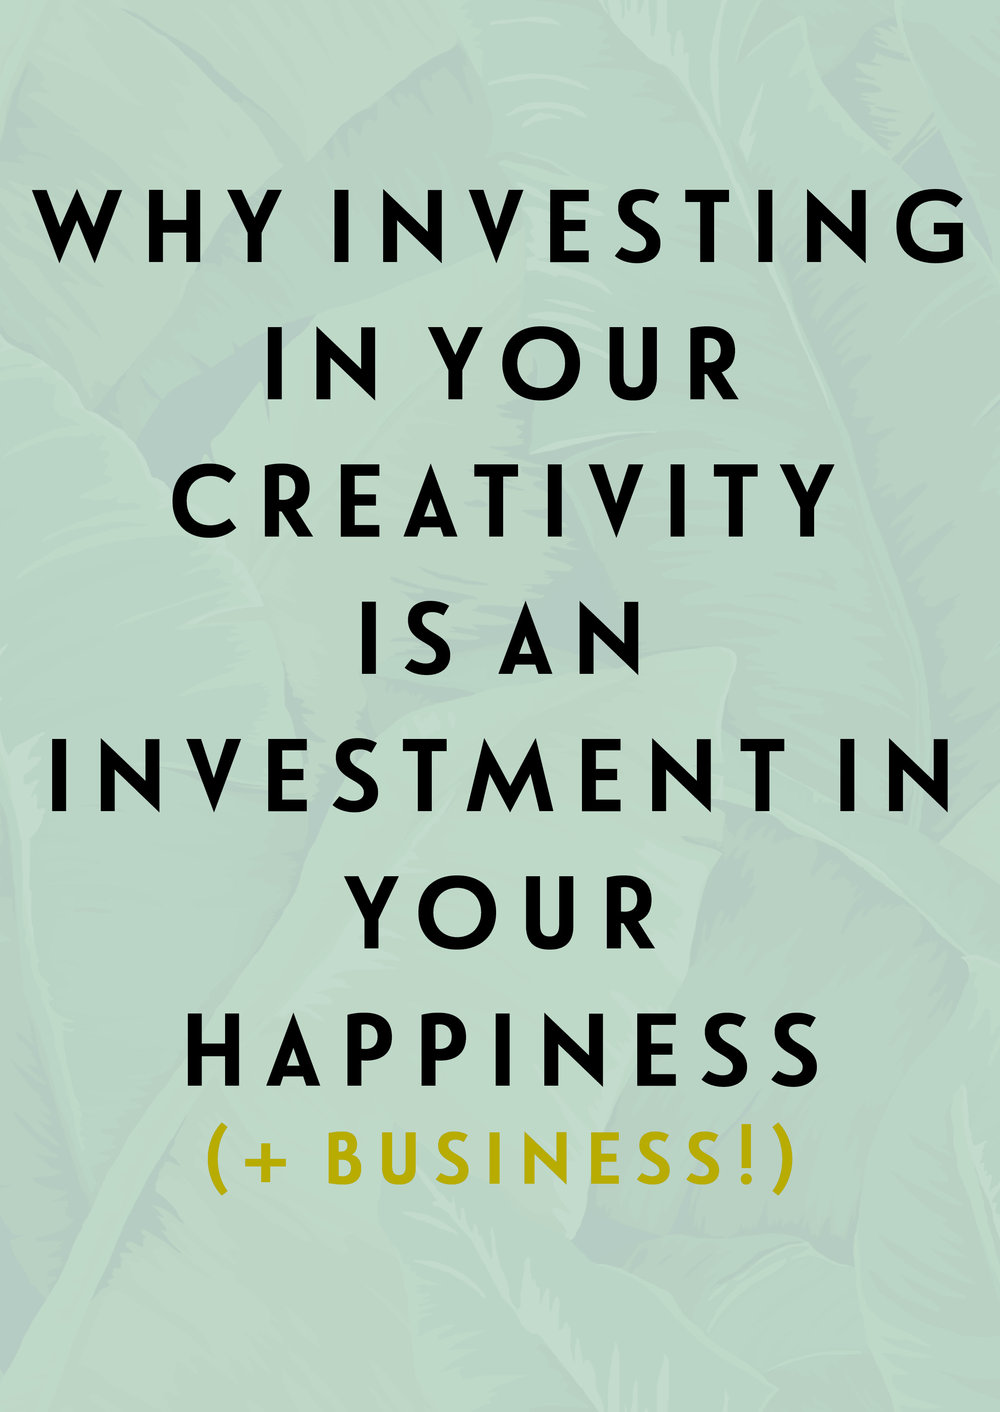 Investing In Your Creativity and Business